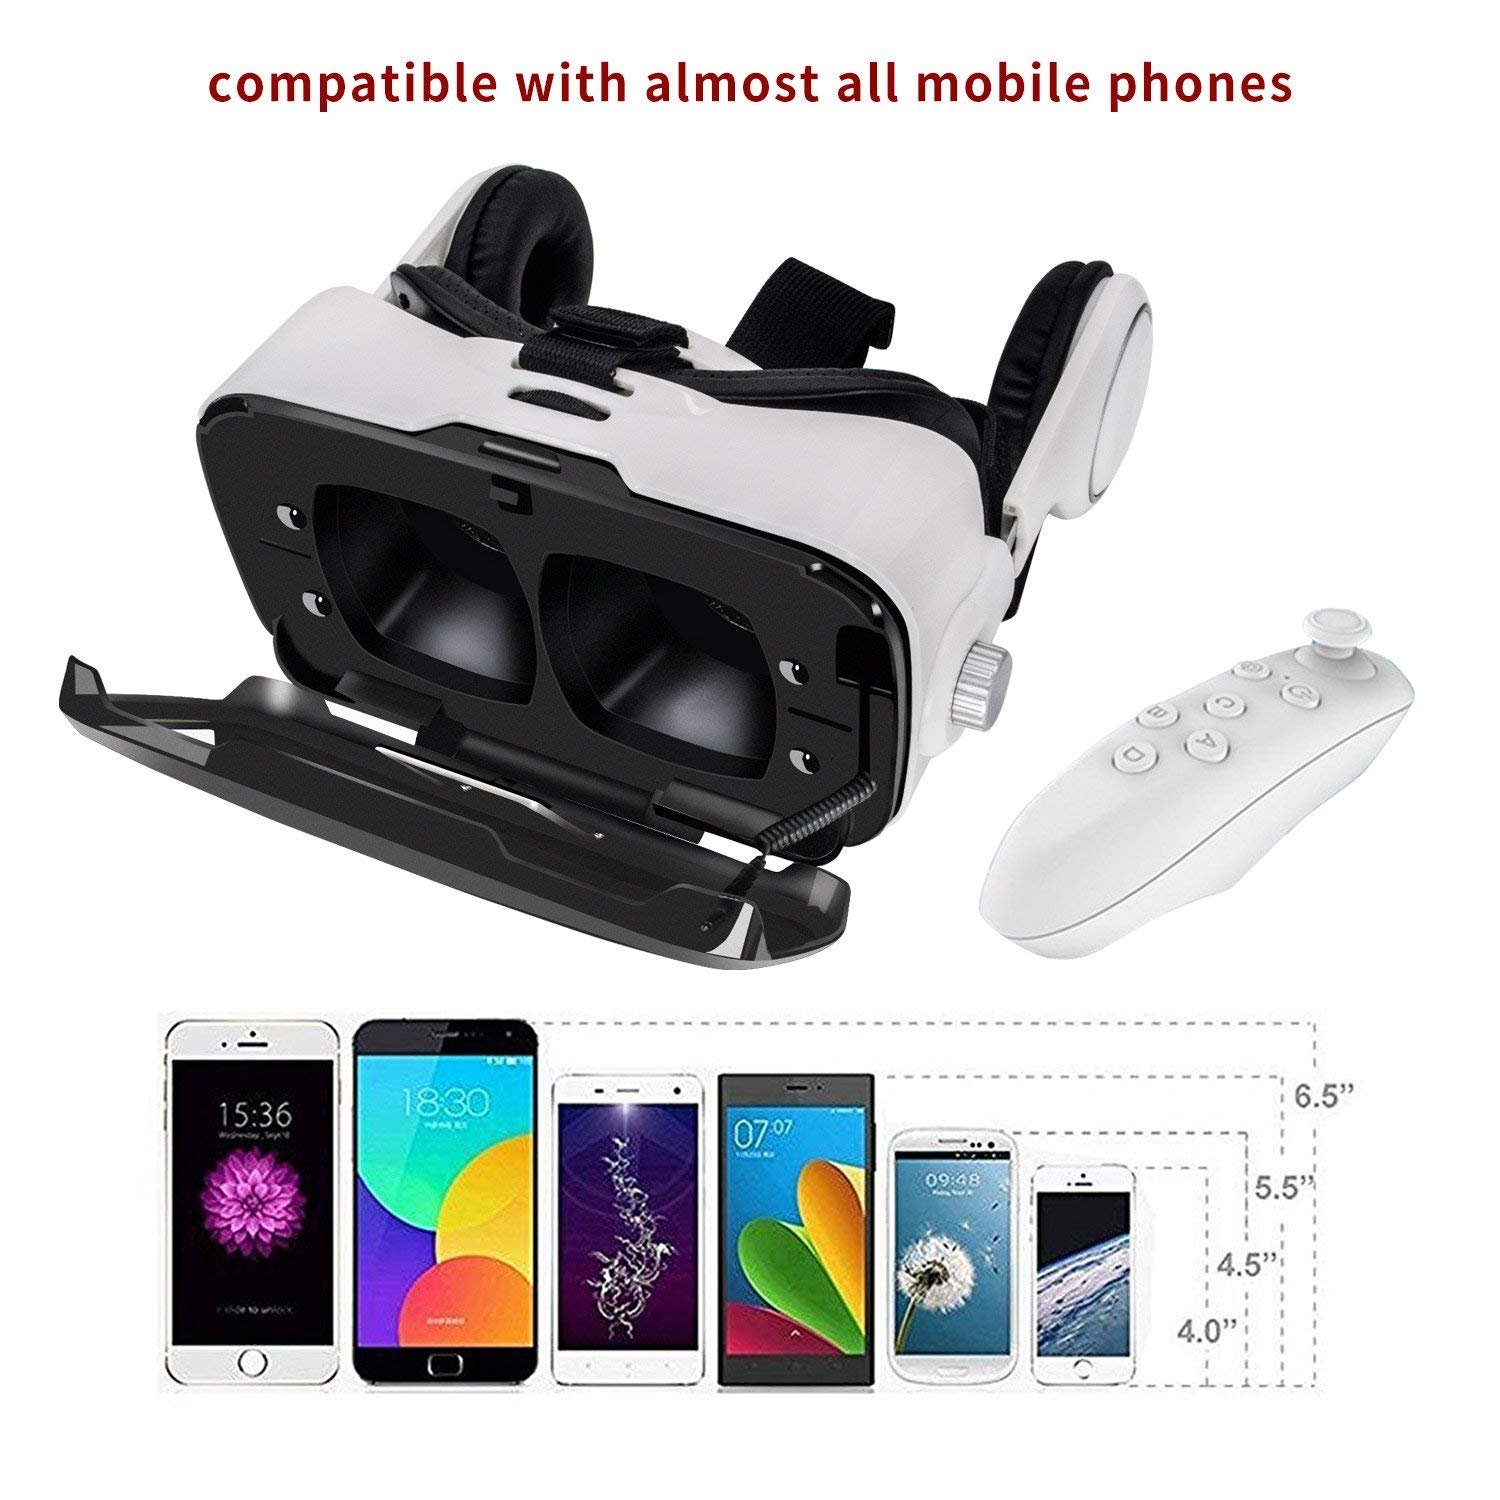 VR Headset, Tcbry 120° FOV, HD Virtual Reality Headset with Bluetooth Remote Controller for Google Pixel 2/2XL, iPhone X/8/7/6 and All Other iOS&Android Smartphones w/4.5-6.0 in (Black)